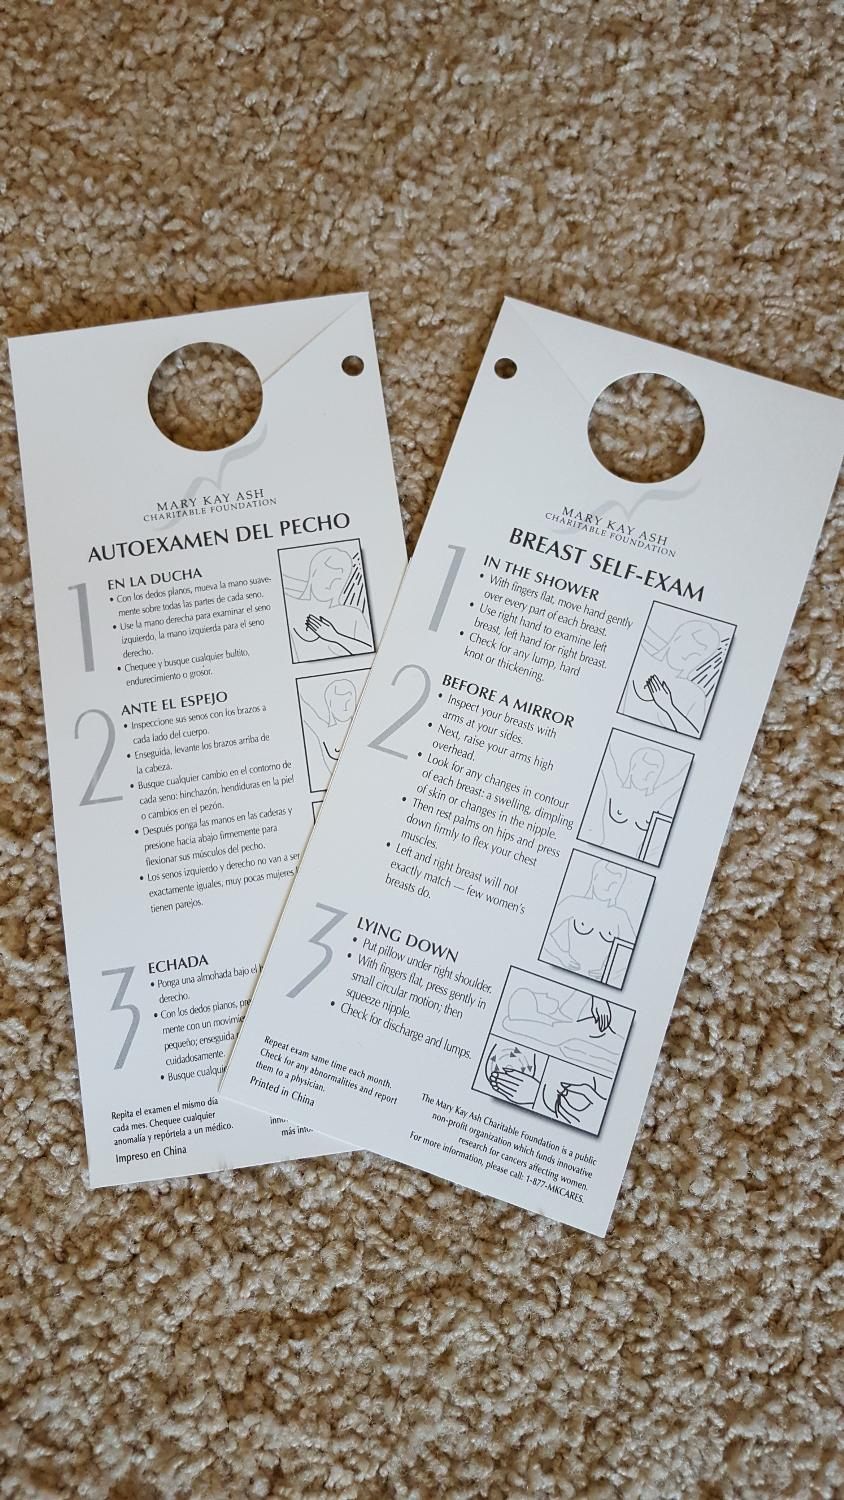 Best Free Breast Self-exam Cards To Hang In Your Shower for sale in  Prosper, Texas for 2019